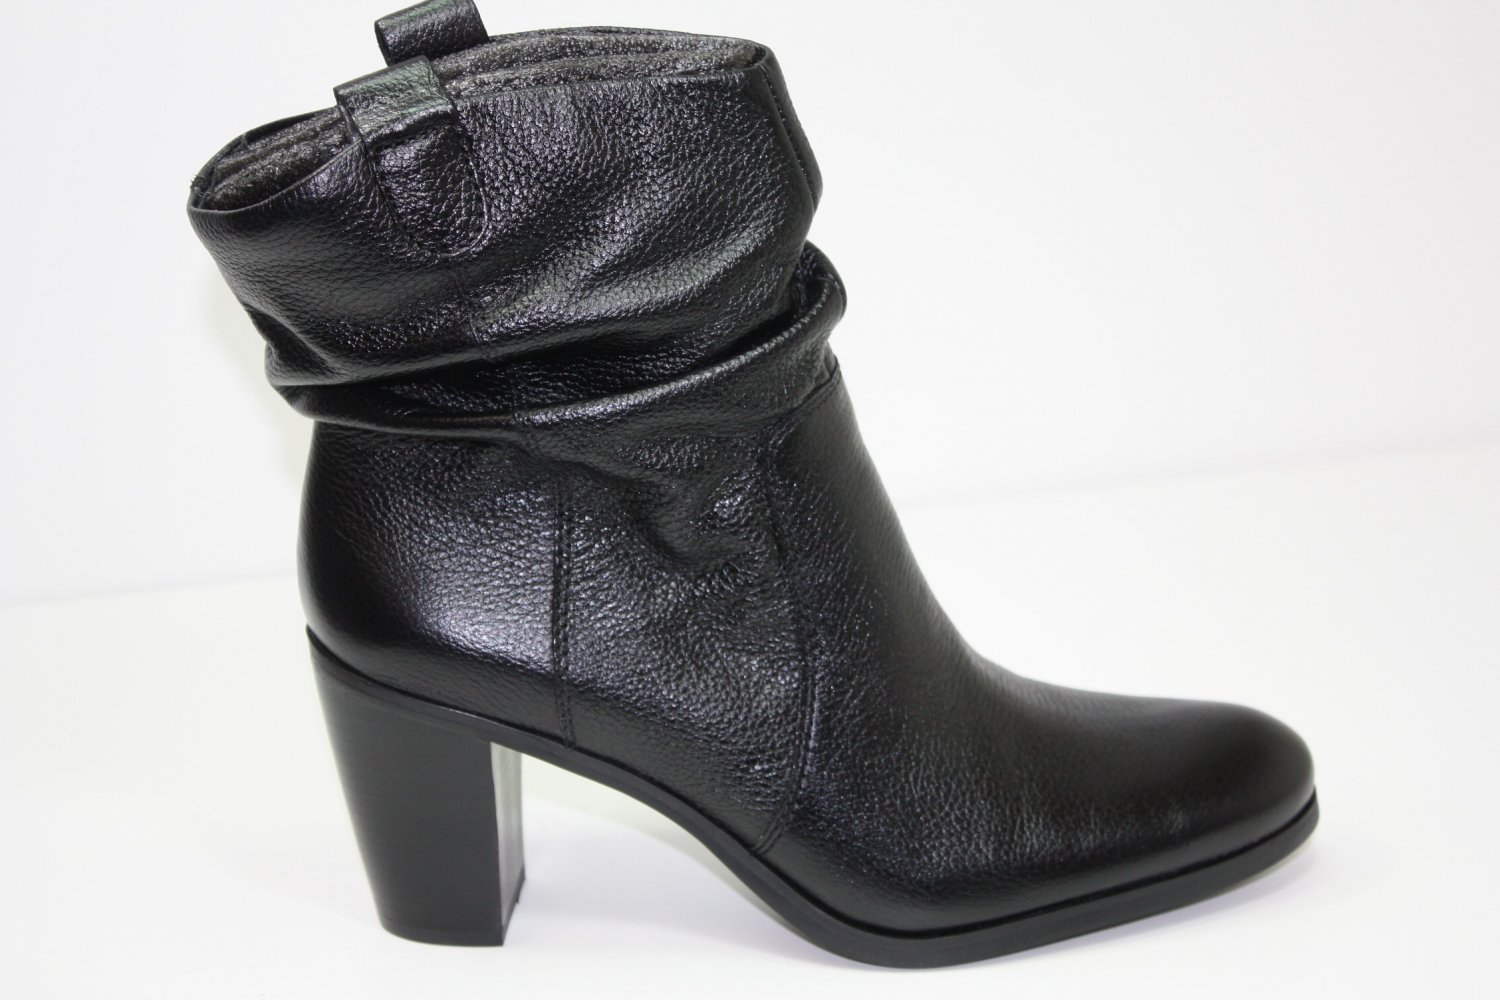 Circa Joan&David Kirstin Boots Black Shoes US 11 $139